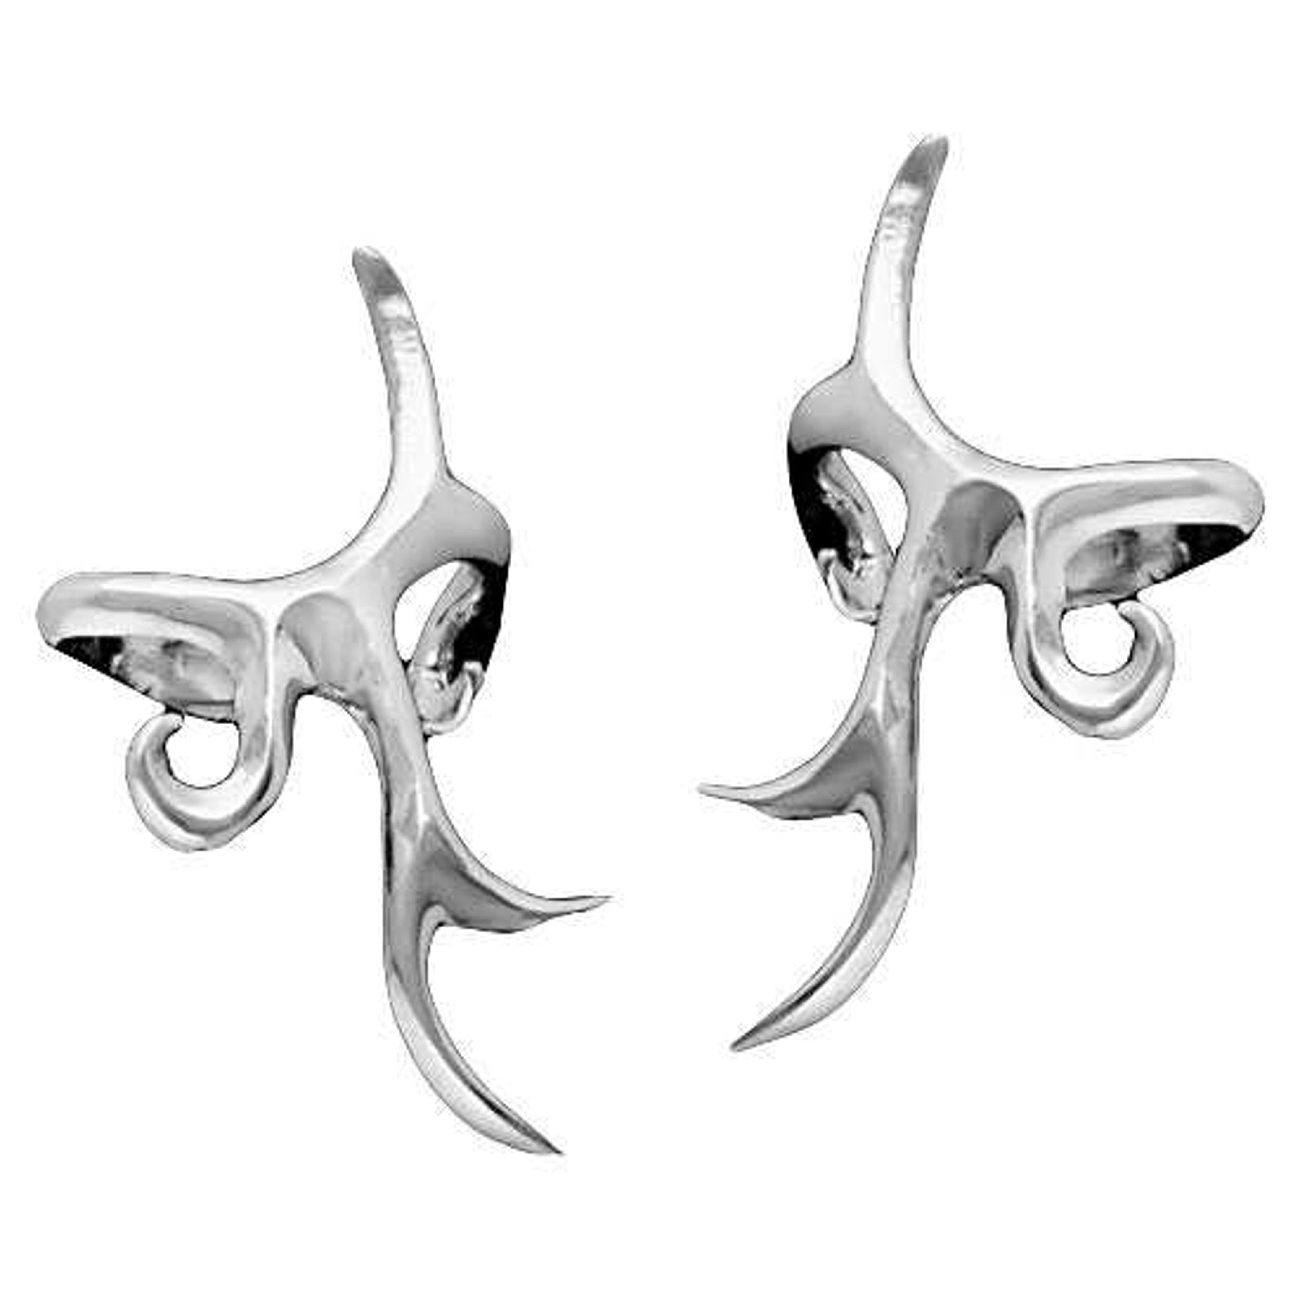 Pierceless Left And Right Tribal Design Ear Cuff Set